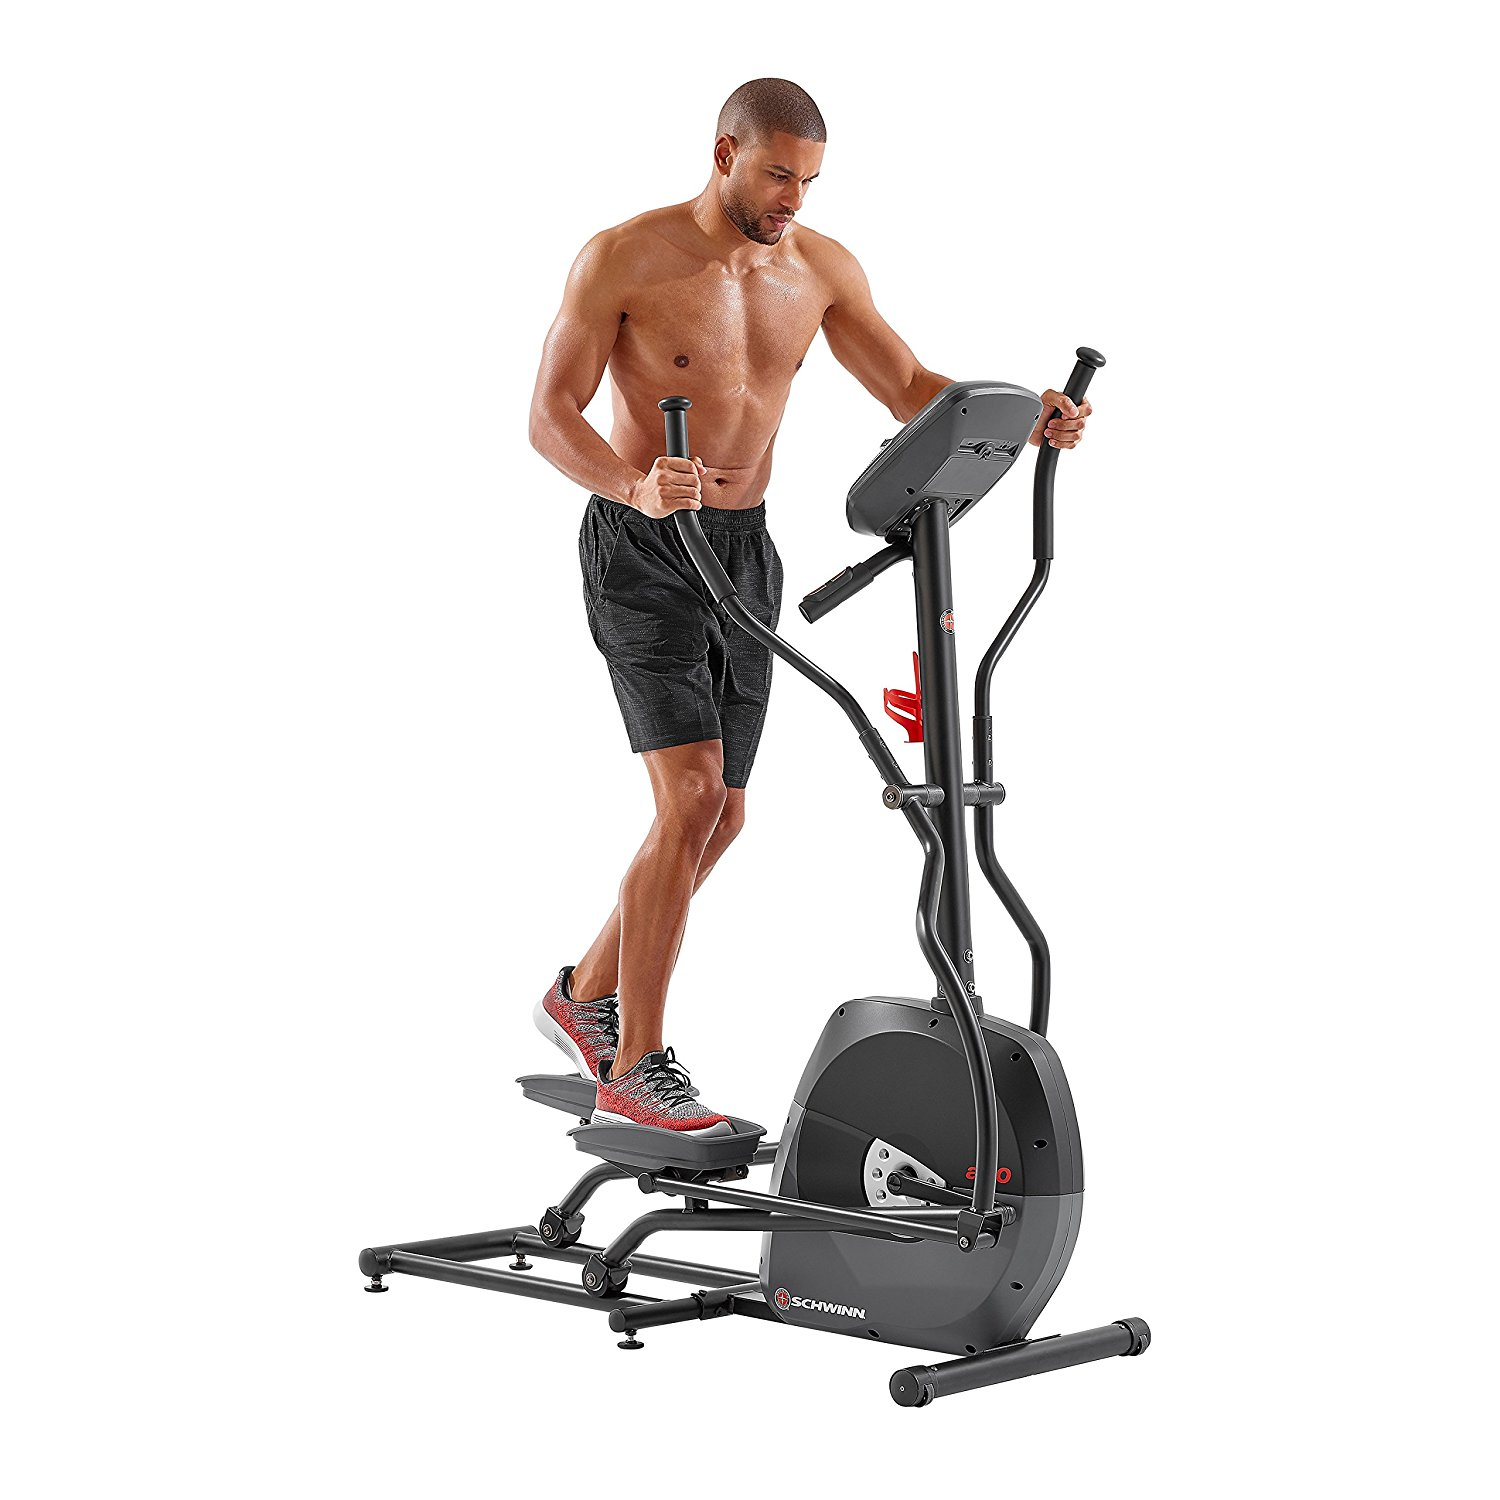 Schwinn A40 Elliptical Review - How Does It Rate?